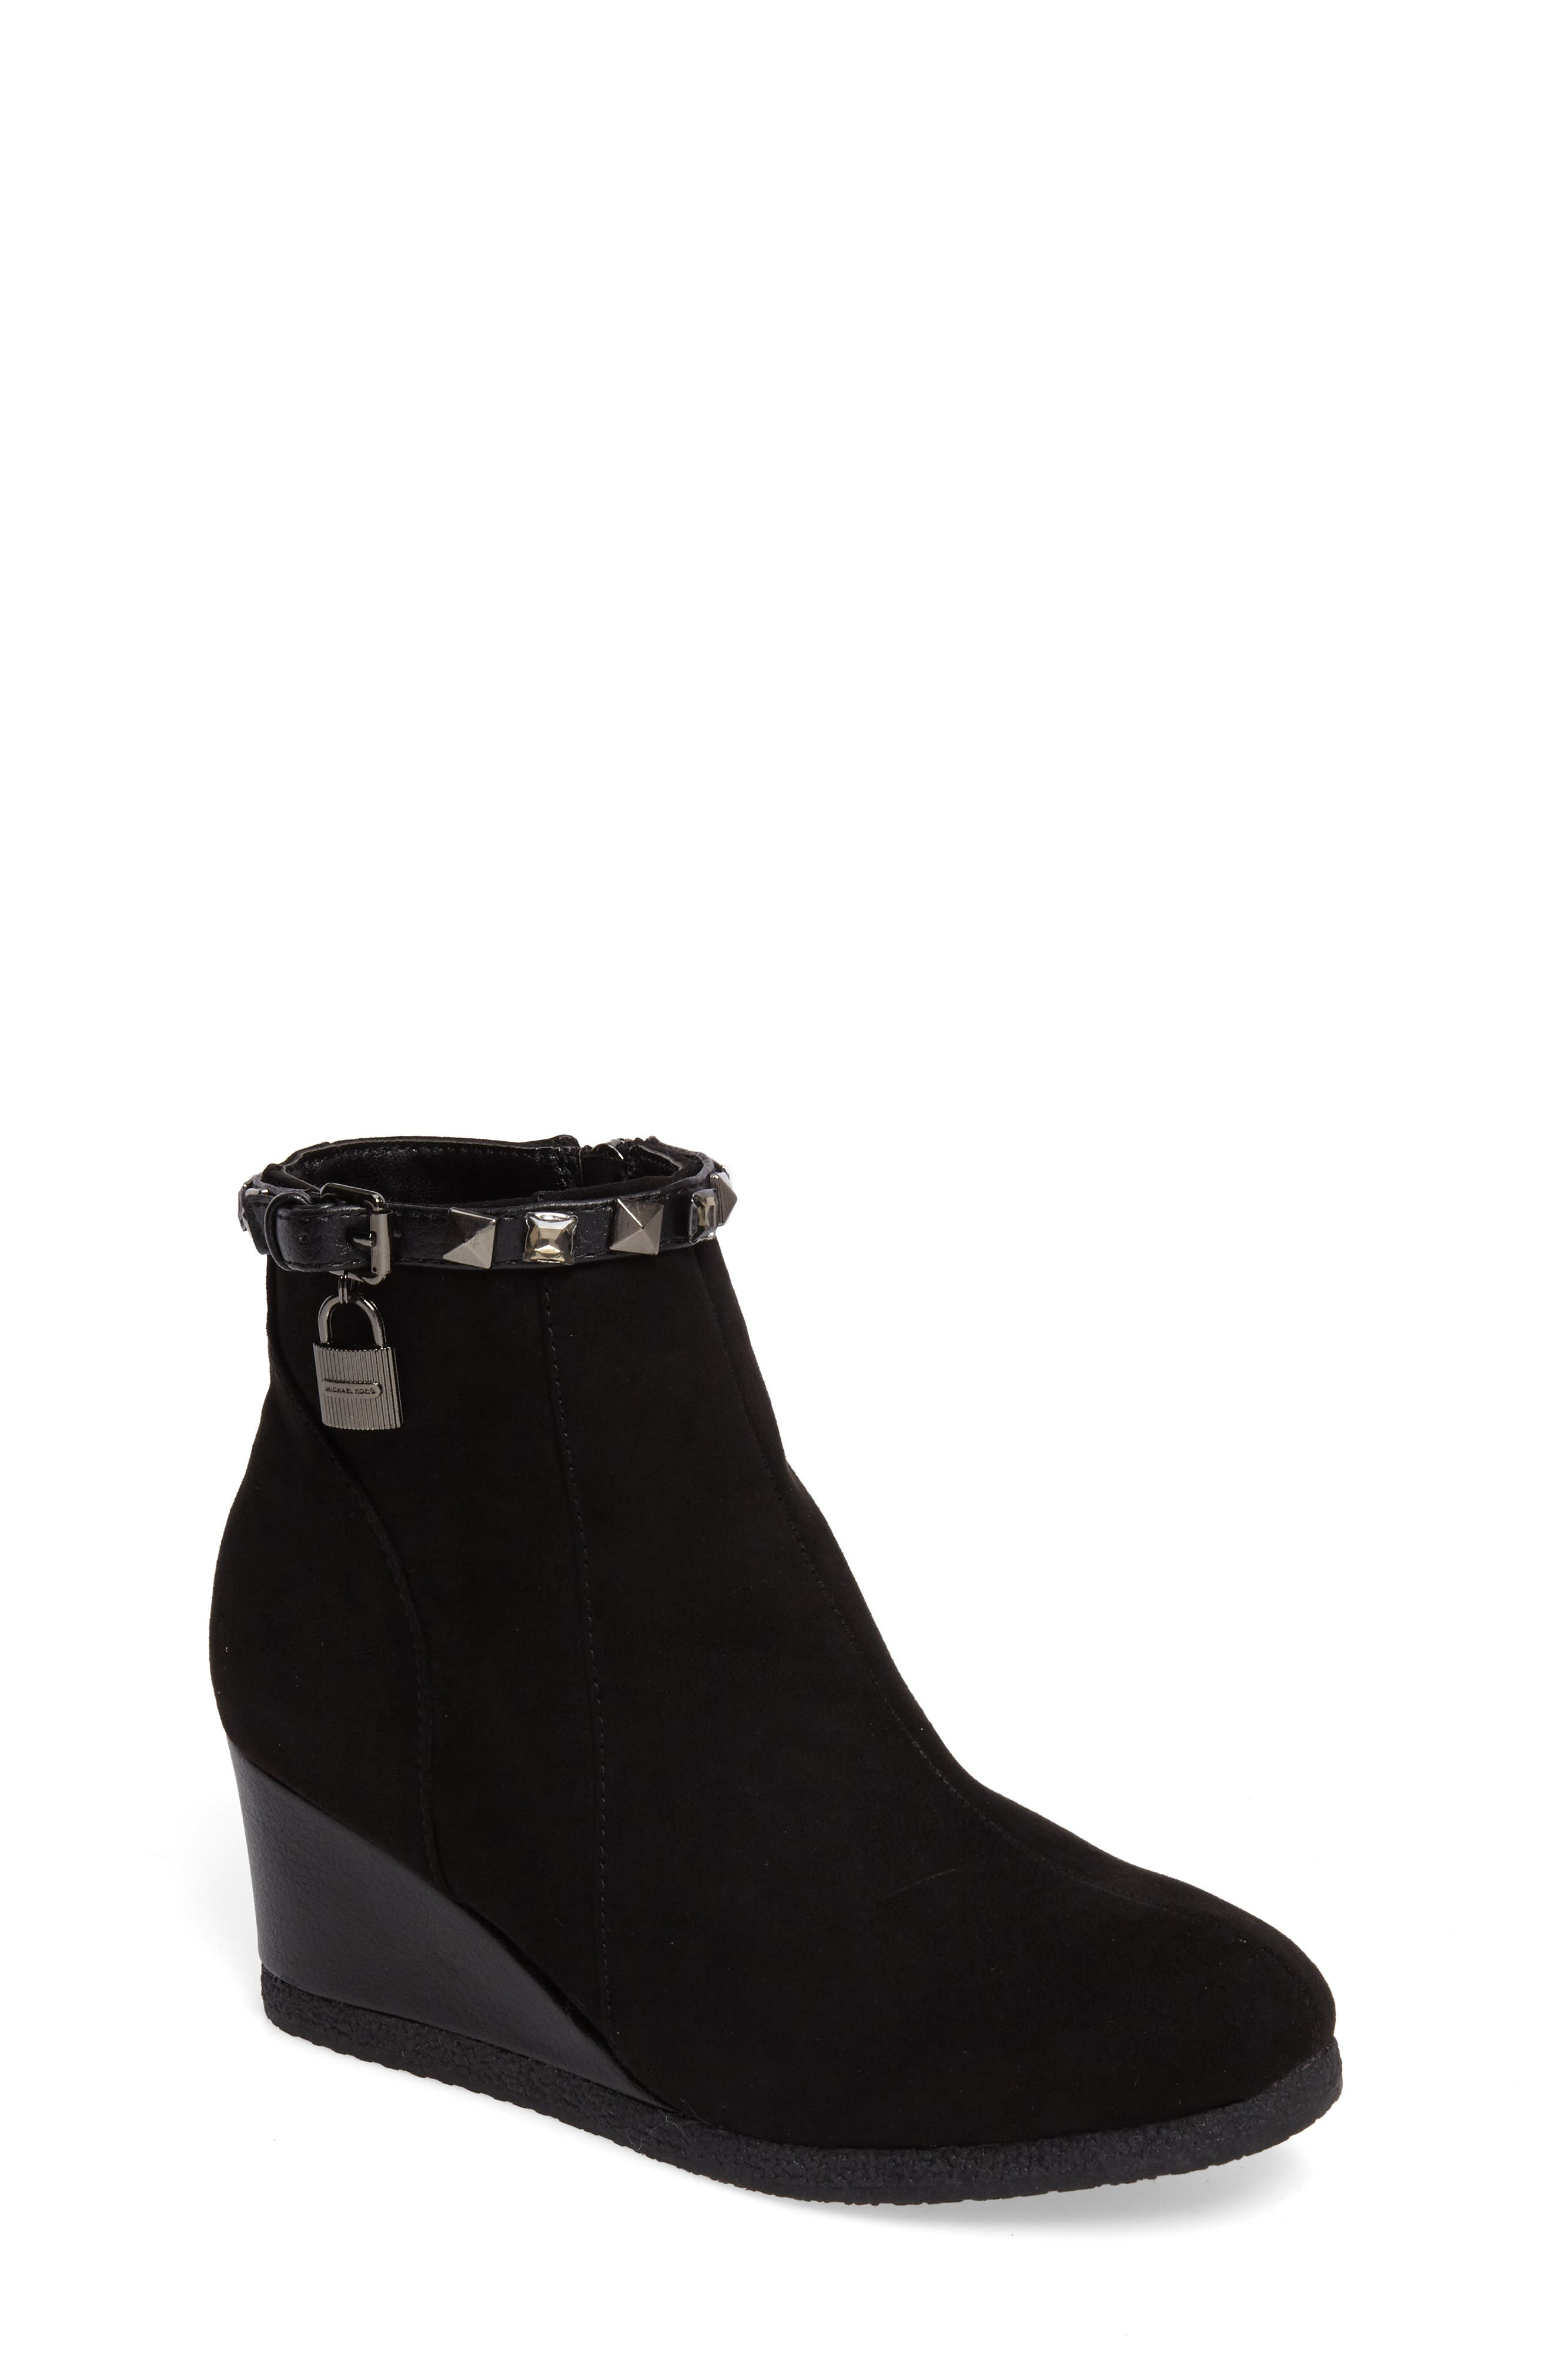 Cara Key Studded Wedge Bootie,                             Main thumbnail 1, color,                             Black